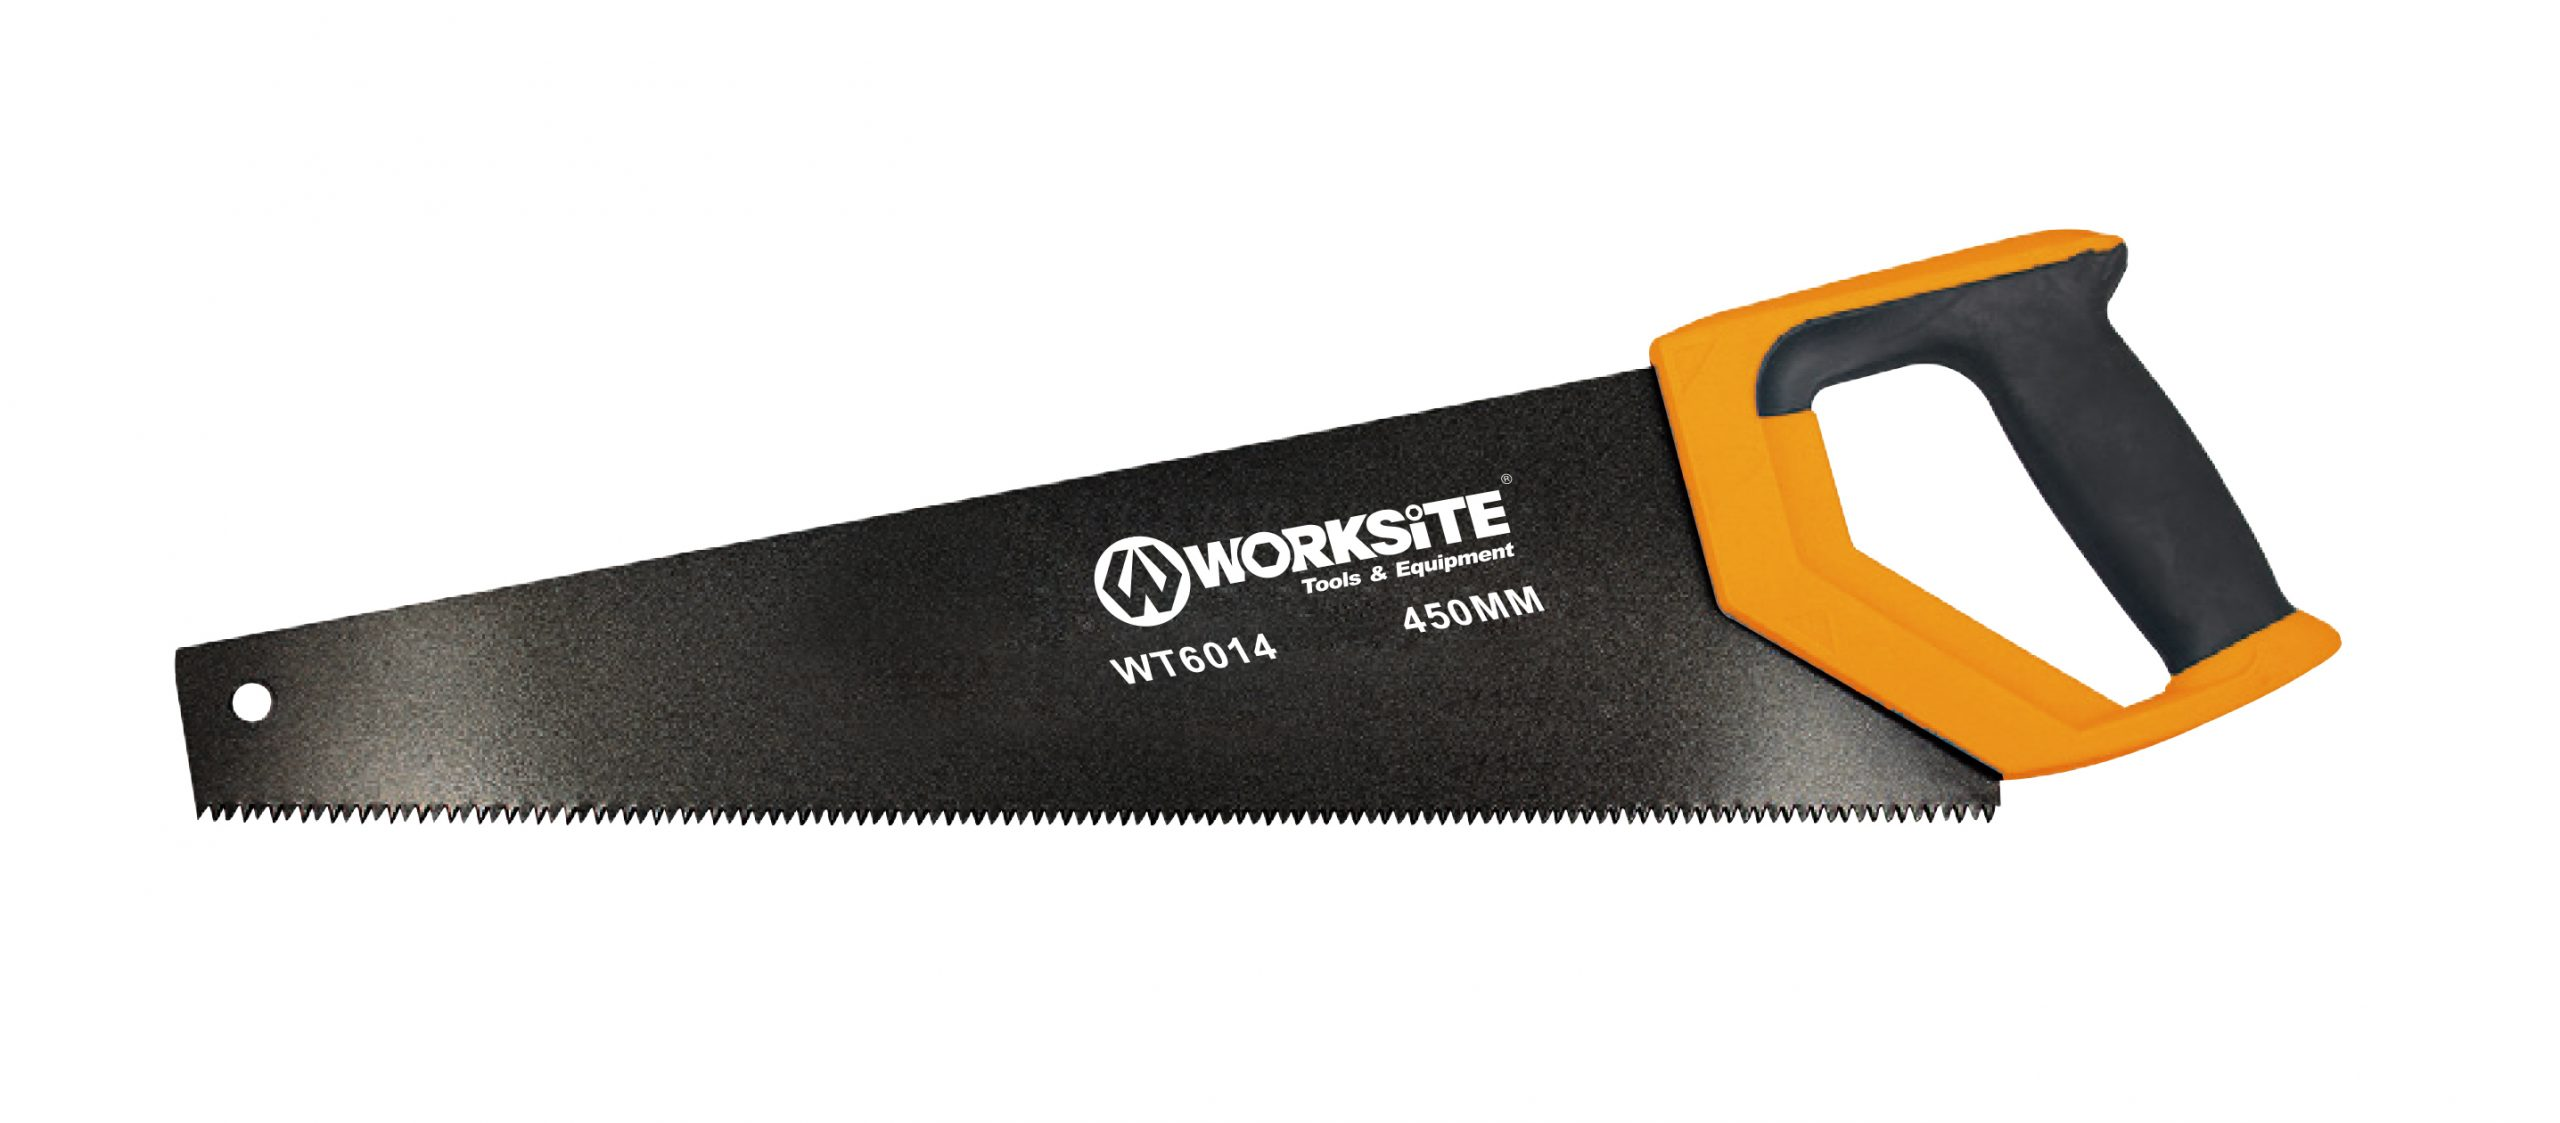 Worksite Hand Saw 18inches/20inches. 3 sided precision ground and induction hardened teeth for easy and perfect cutting. Perfect Saw for general and specific purposes for both professional and amateur DIY maintenance or work. WT6014